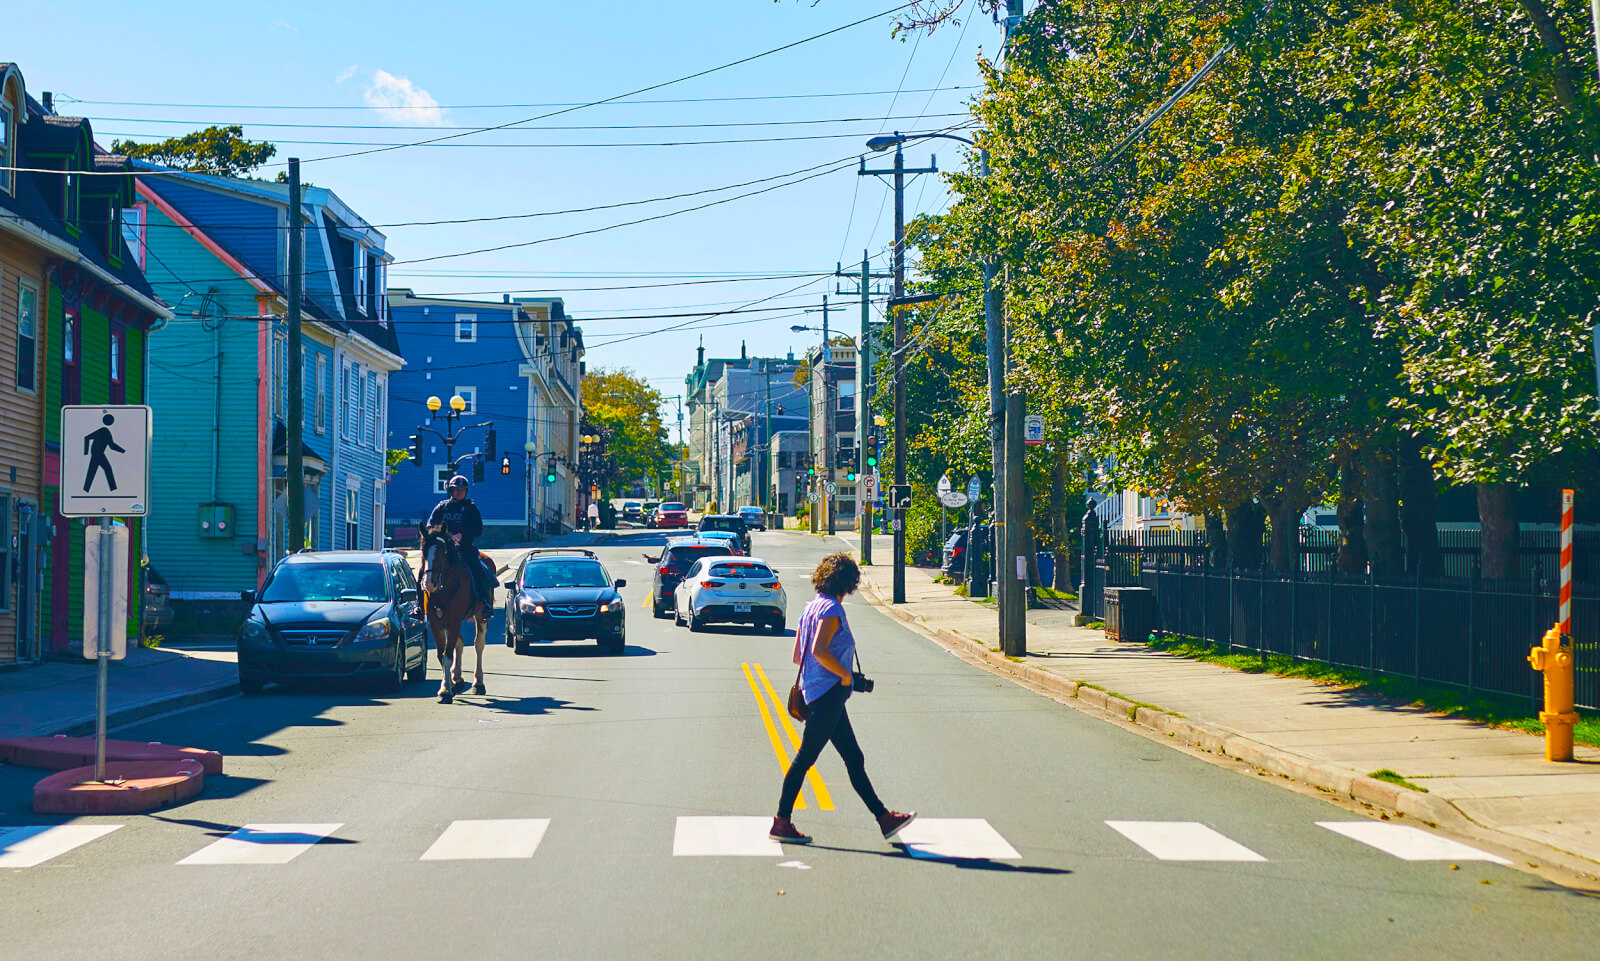 10 Places/Things to Photograph<br>in St. John's - image